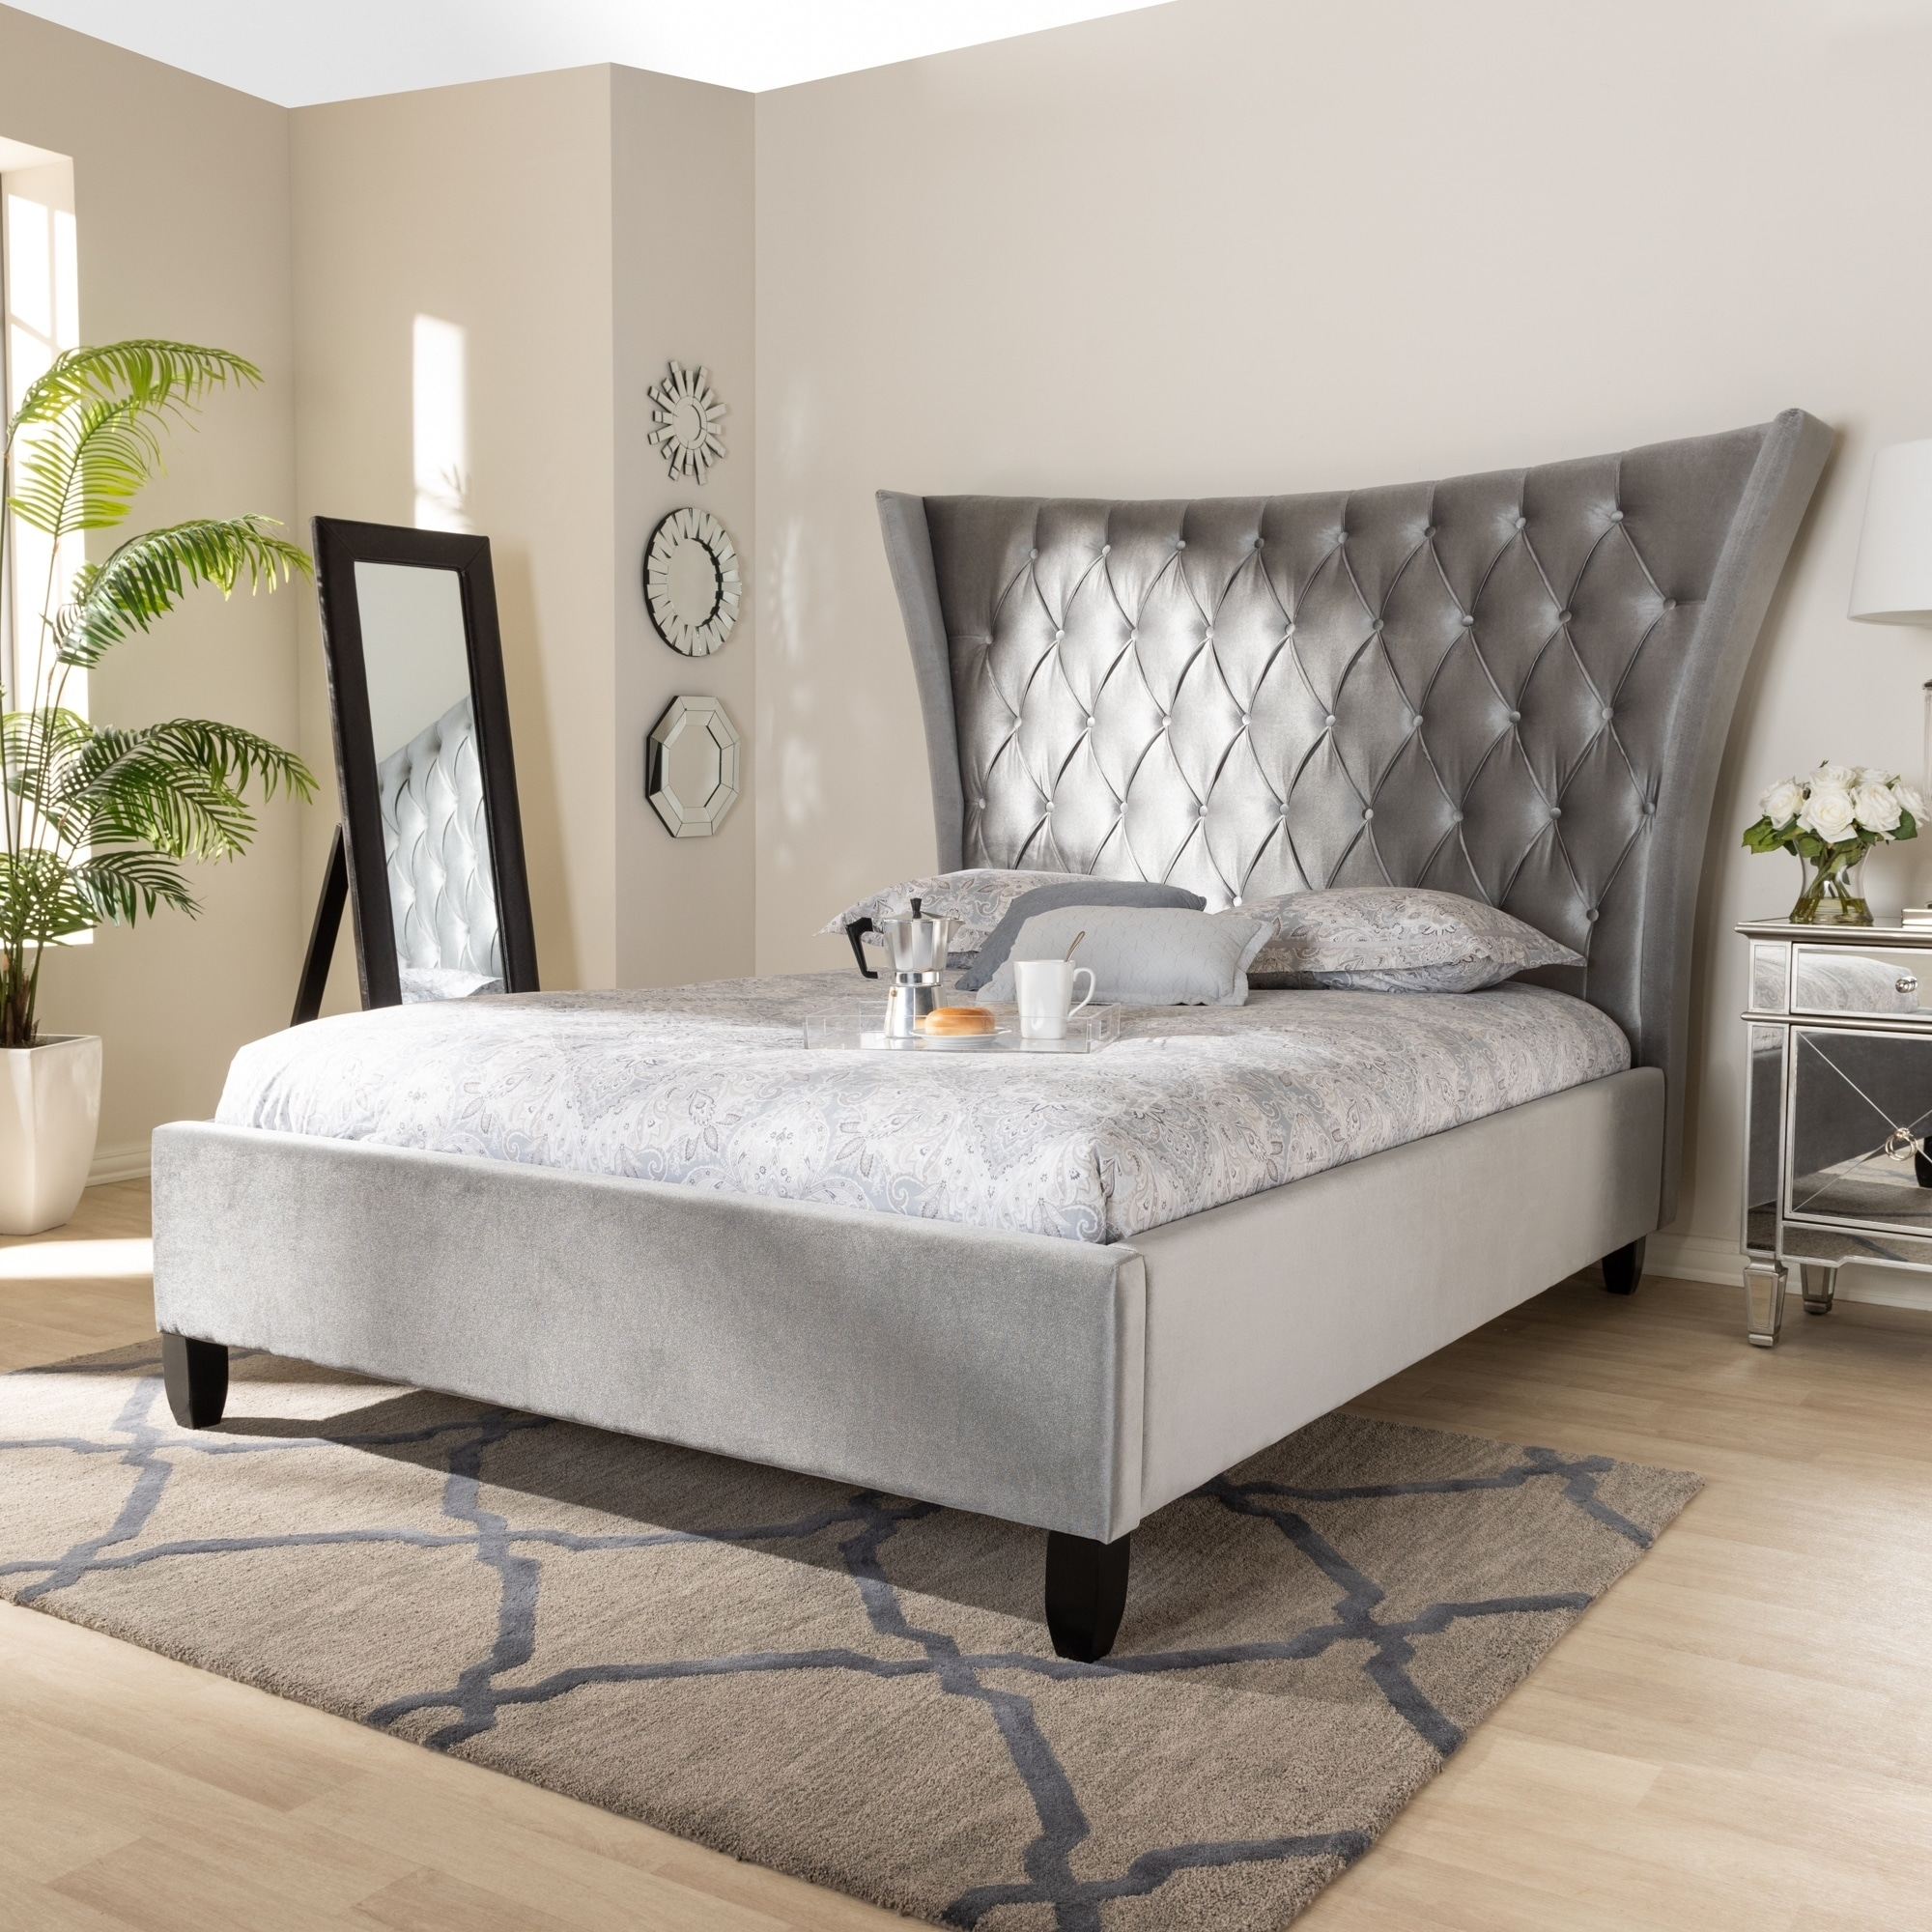 Glam Velvet Fabric Platform Bed With Tall Wingback Headboard Overstock 28031994 Queen